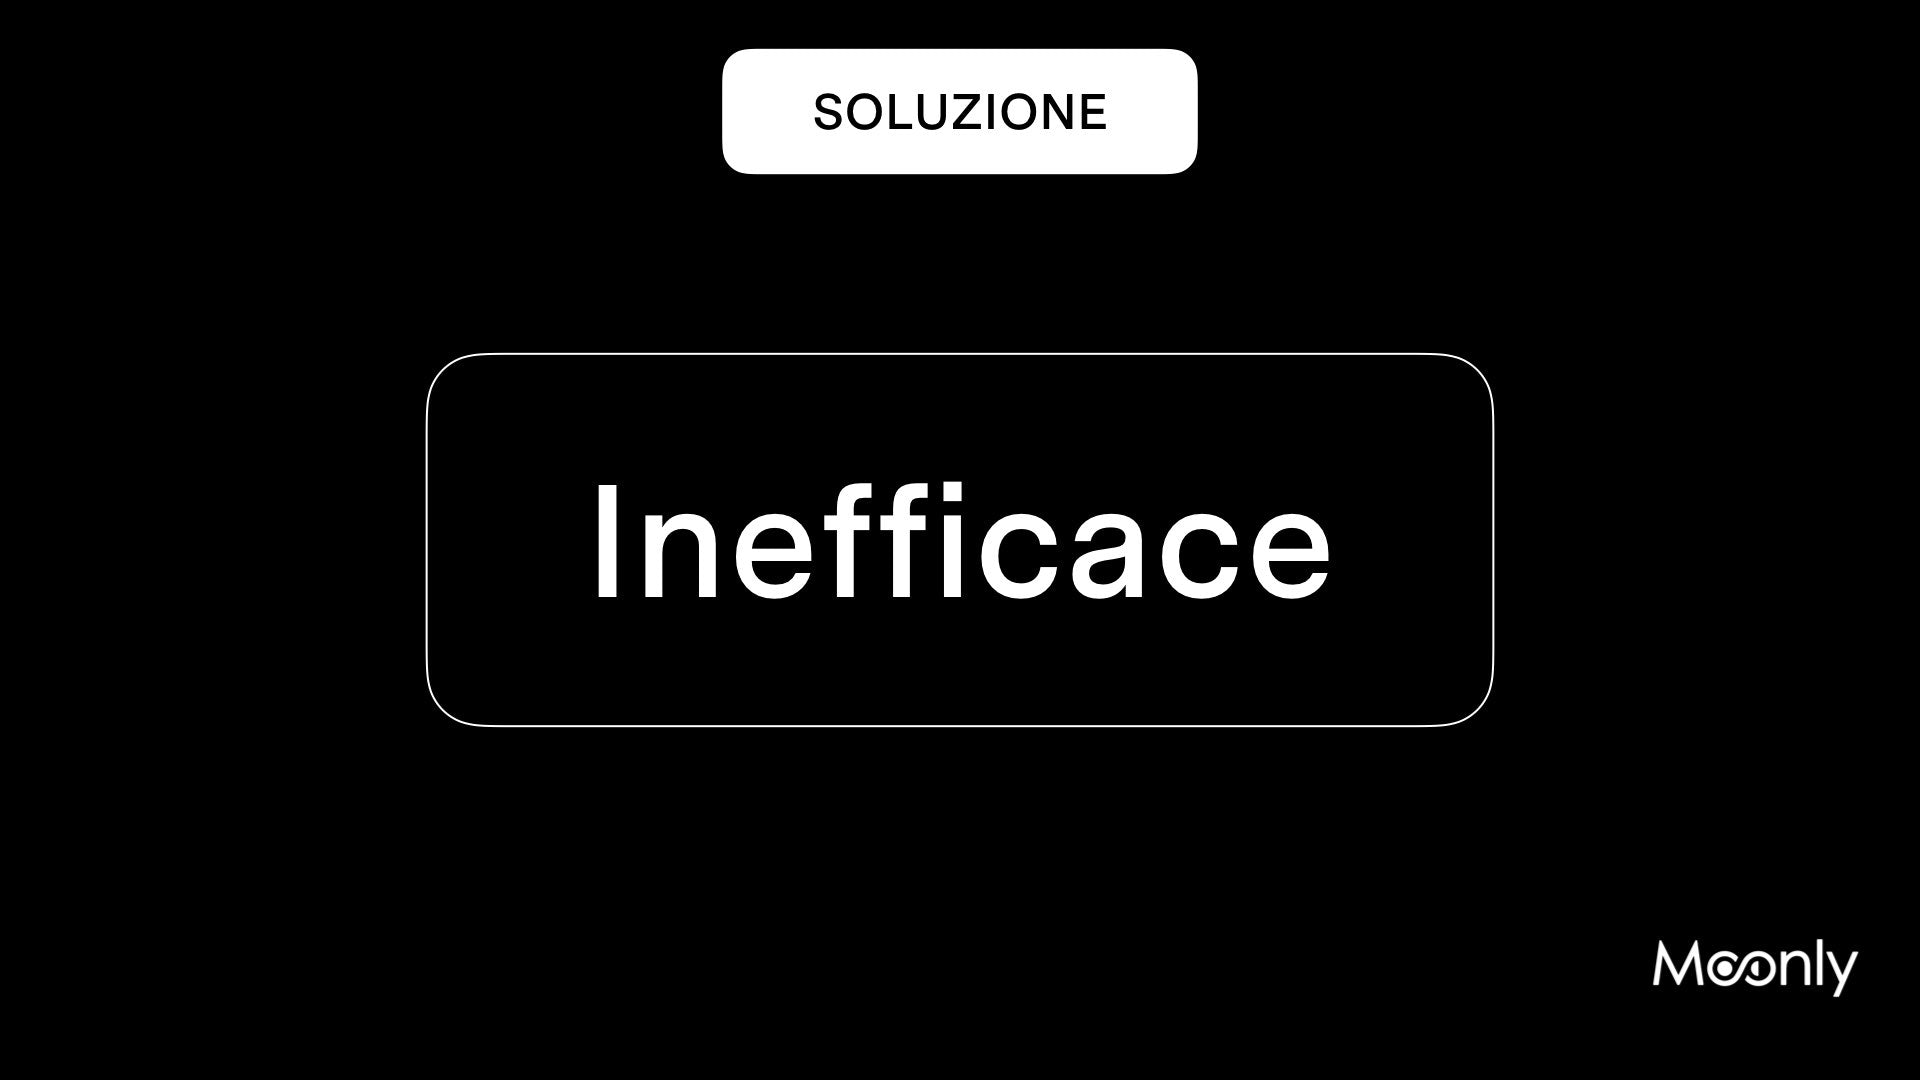 Learning experience inefficace